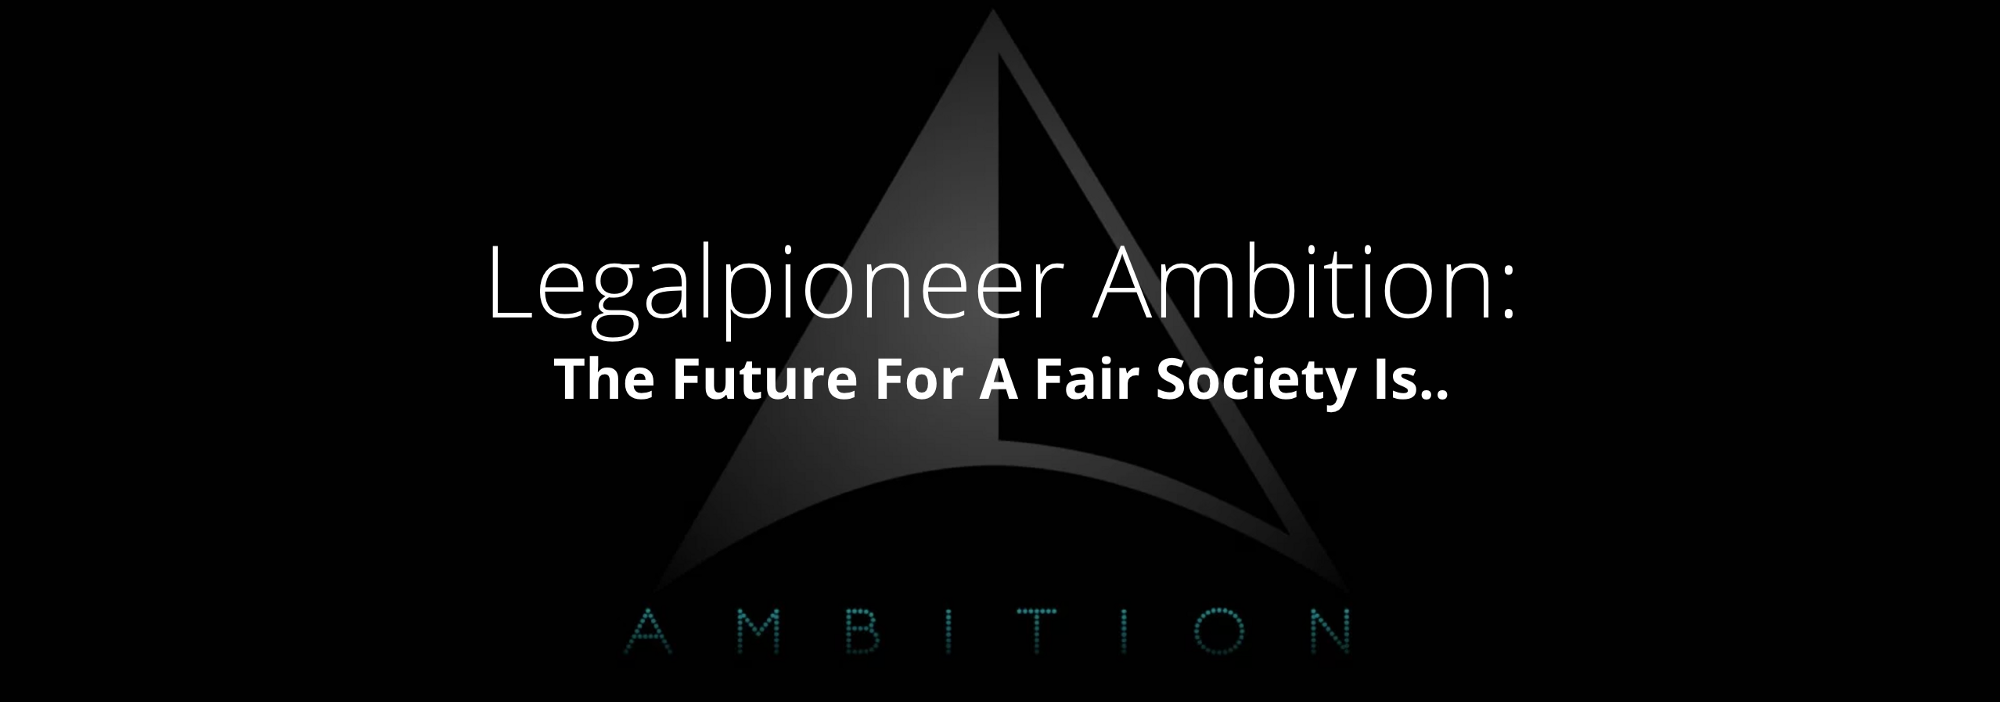 Legalpioneer Ambition: The Future For A Fair Society Is..